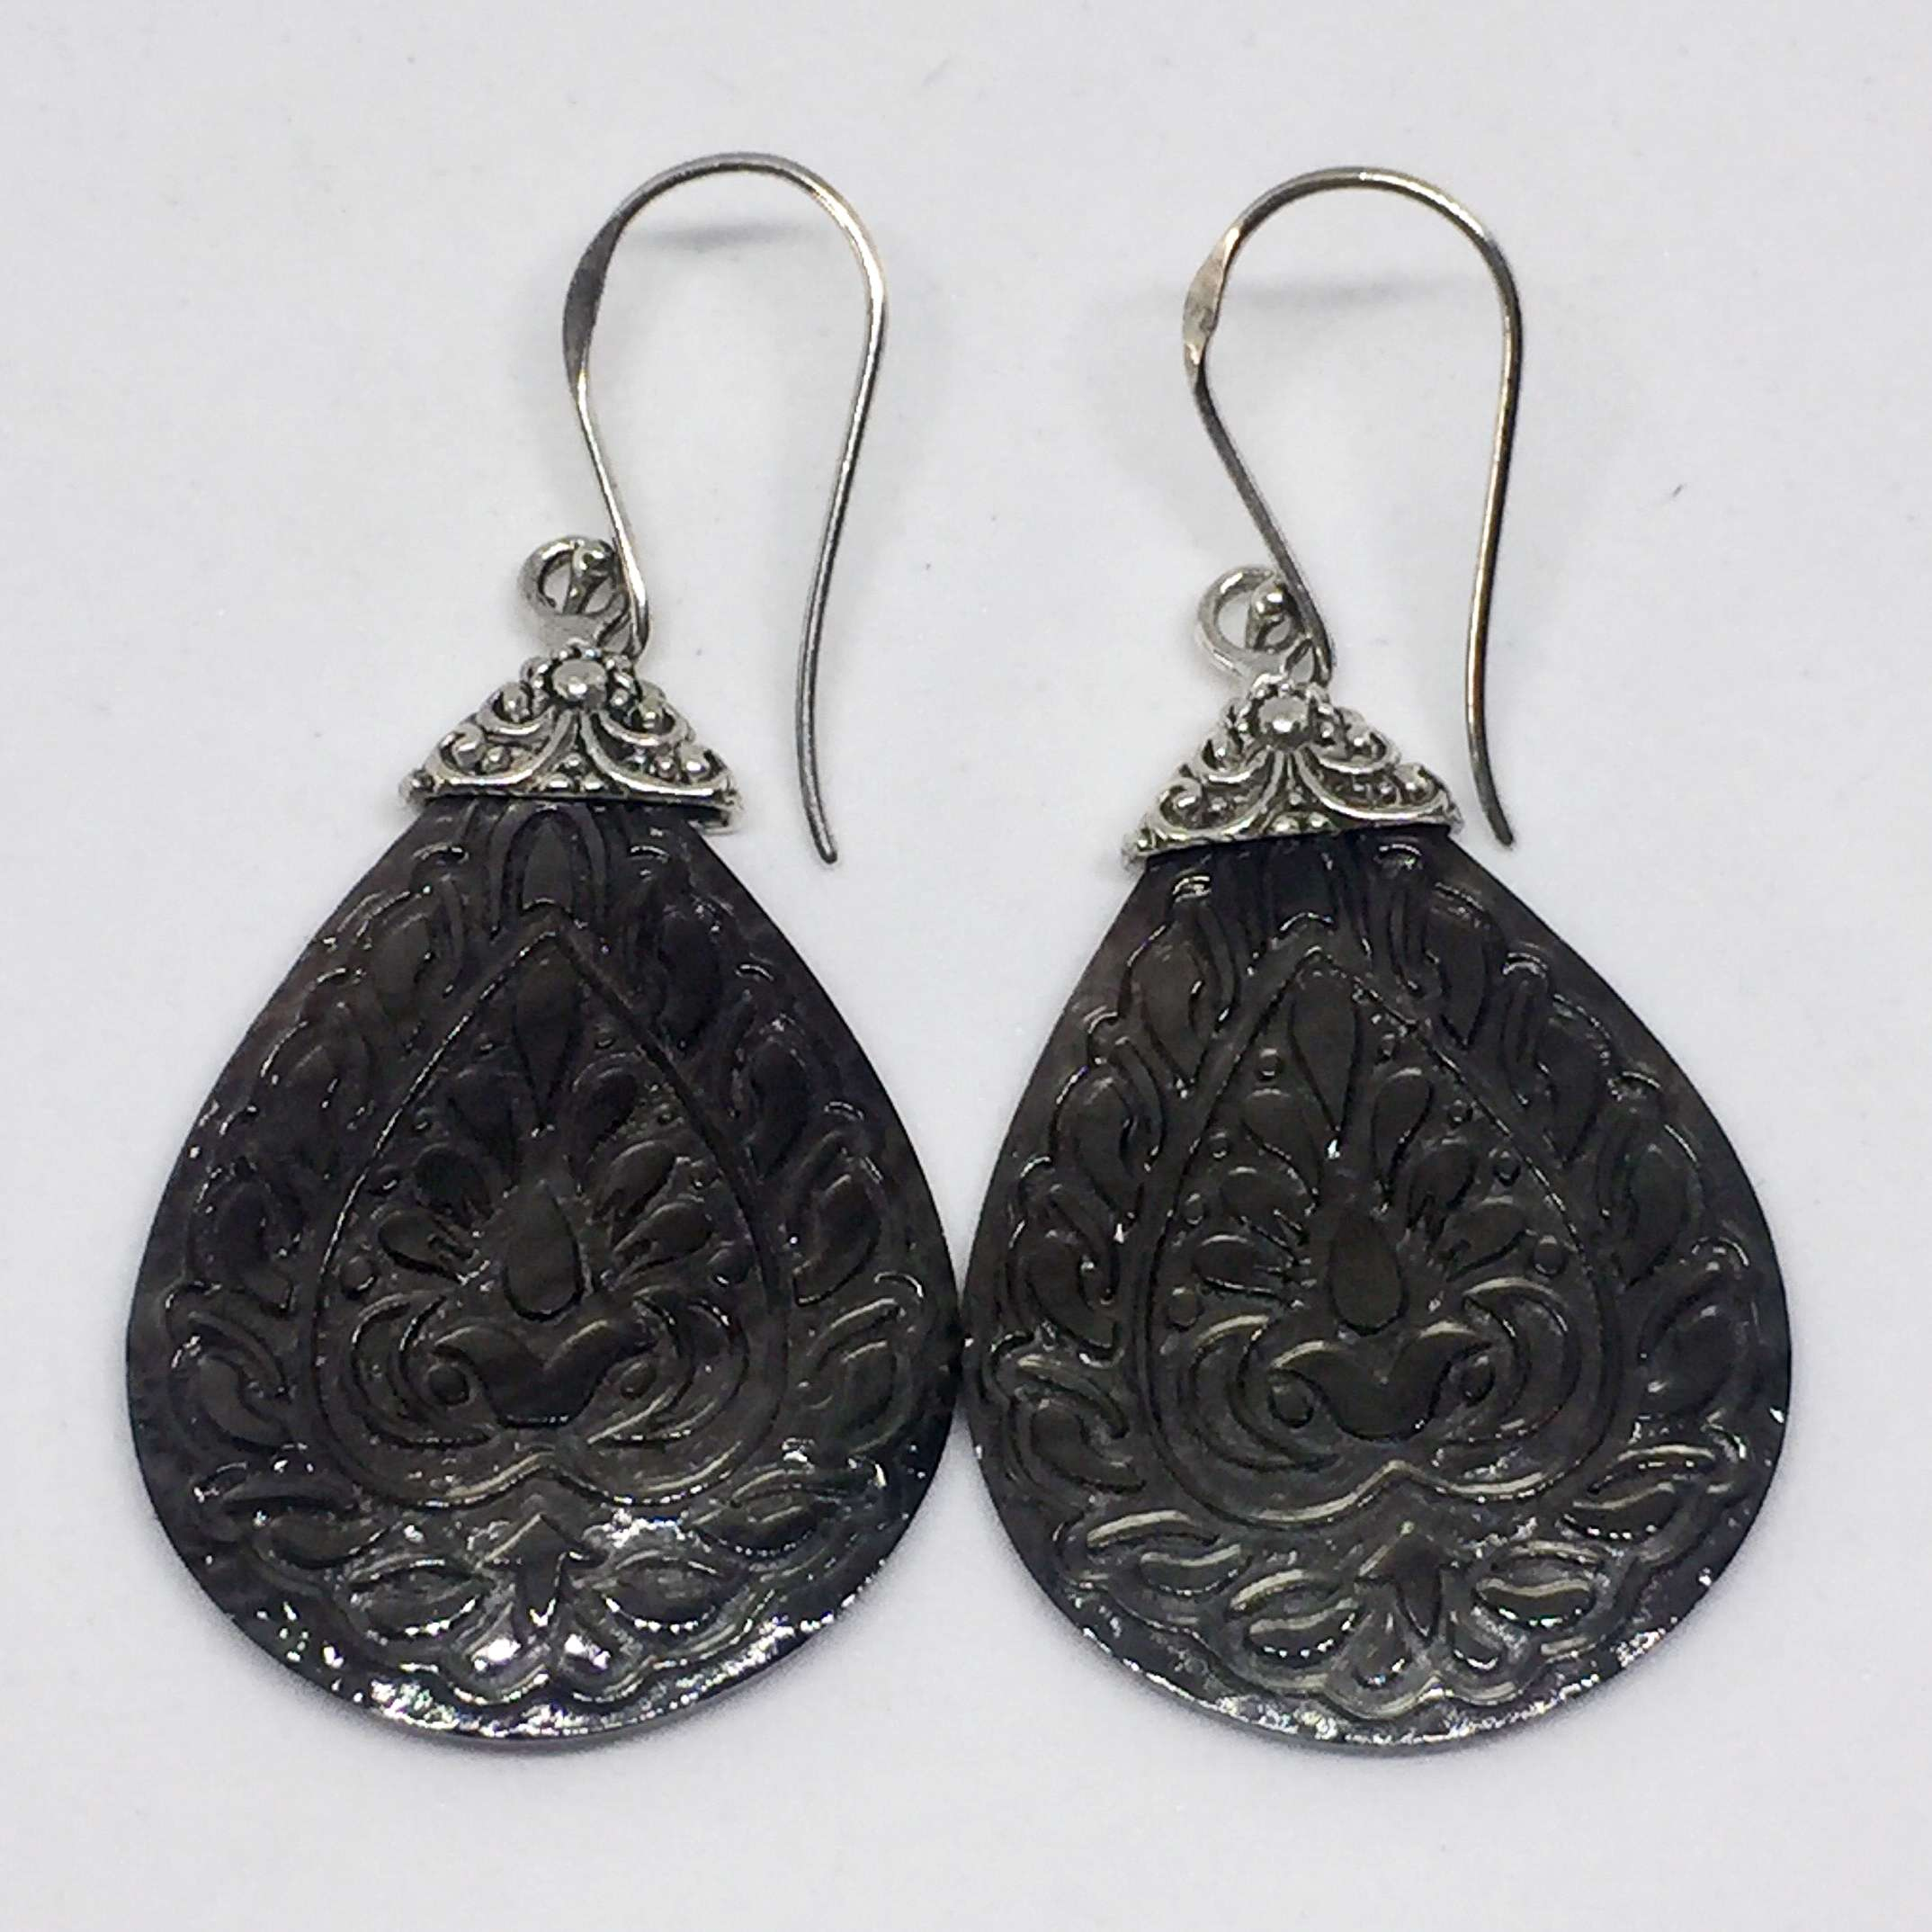 (UNIQUE 925 BALI SILVER EARRINGS WITH HAND CARVING BLACK SHELL)